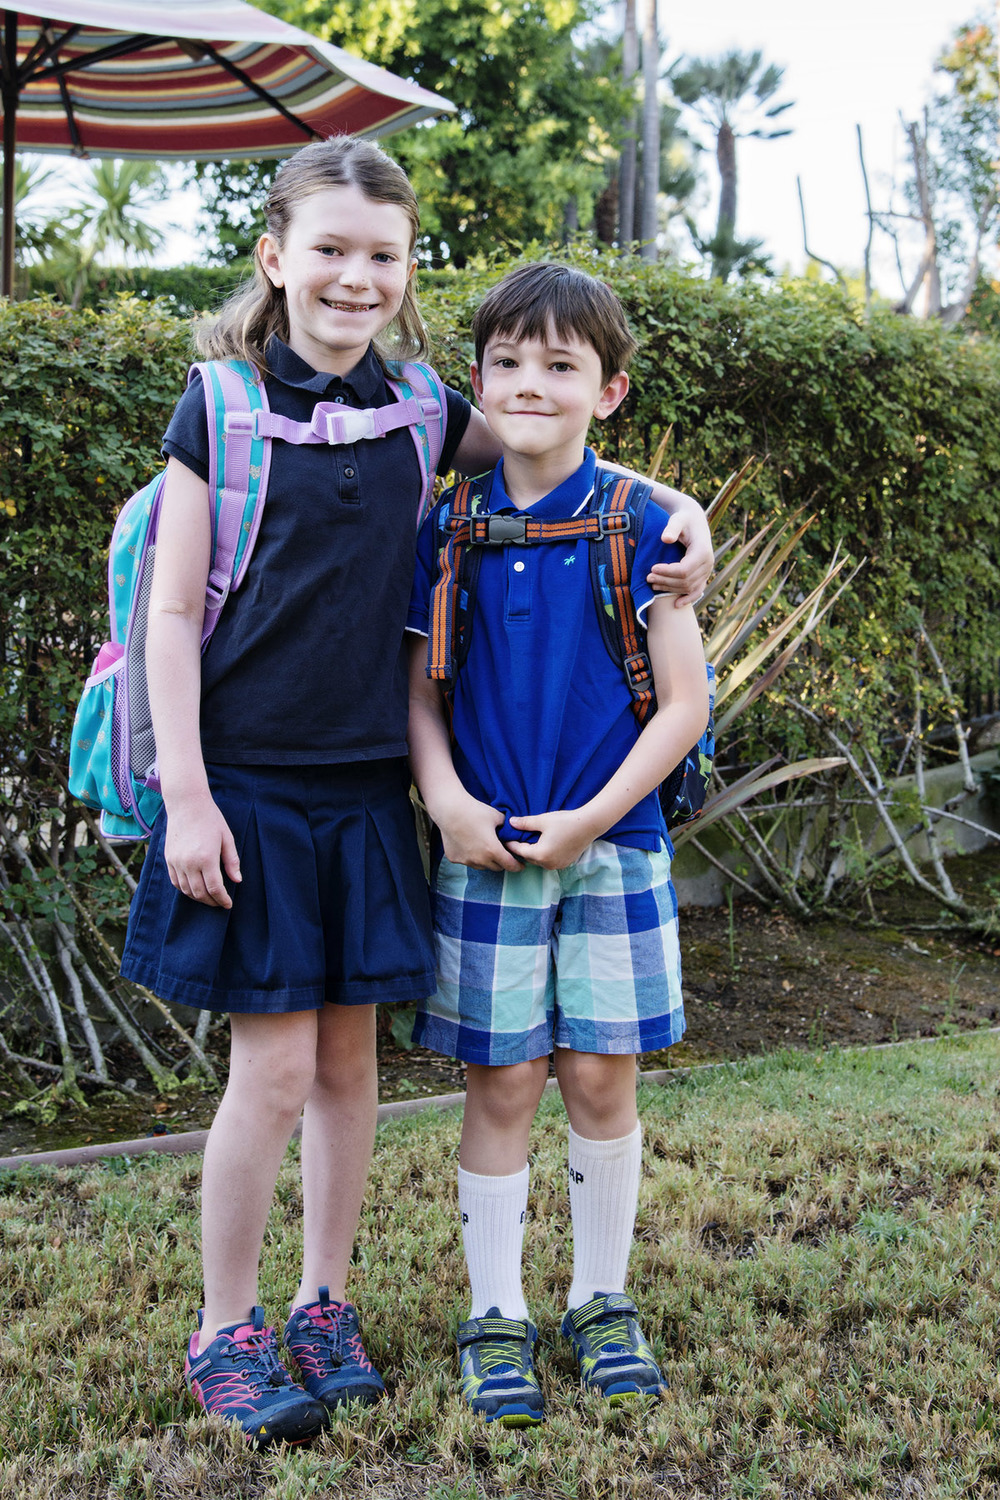 First day of fourth grade and kindergarten.  Nikon D800, 24-120mm lens @ 44mm, iso 500, f5.6, 1/125 sec.